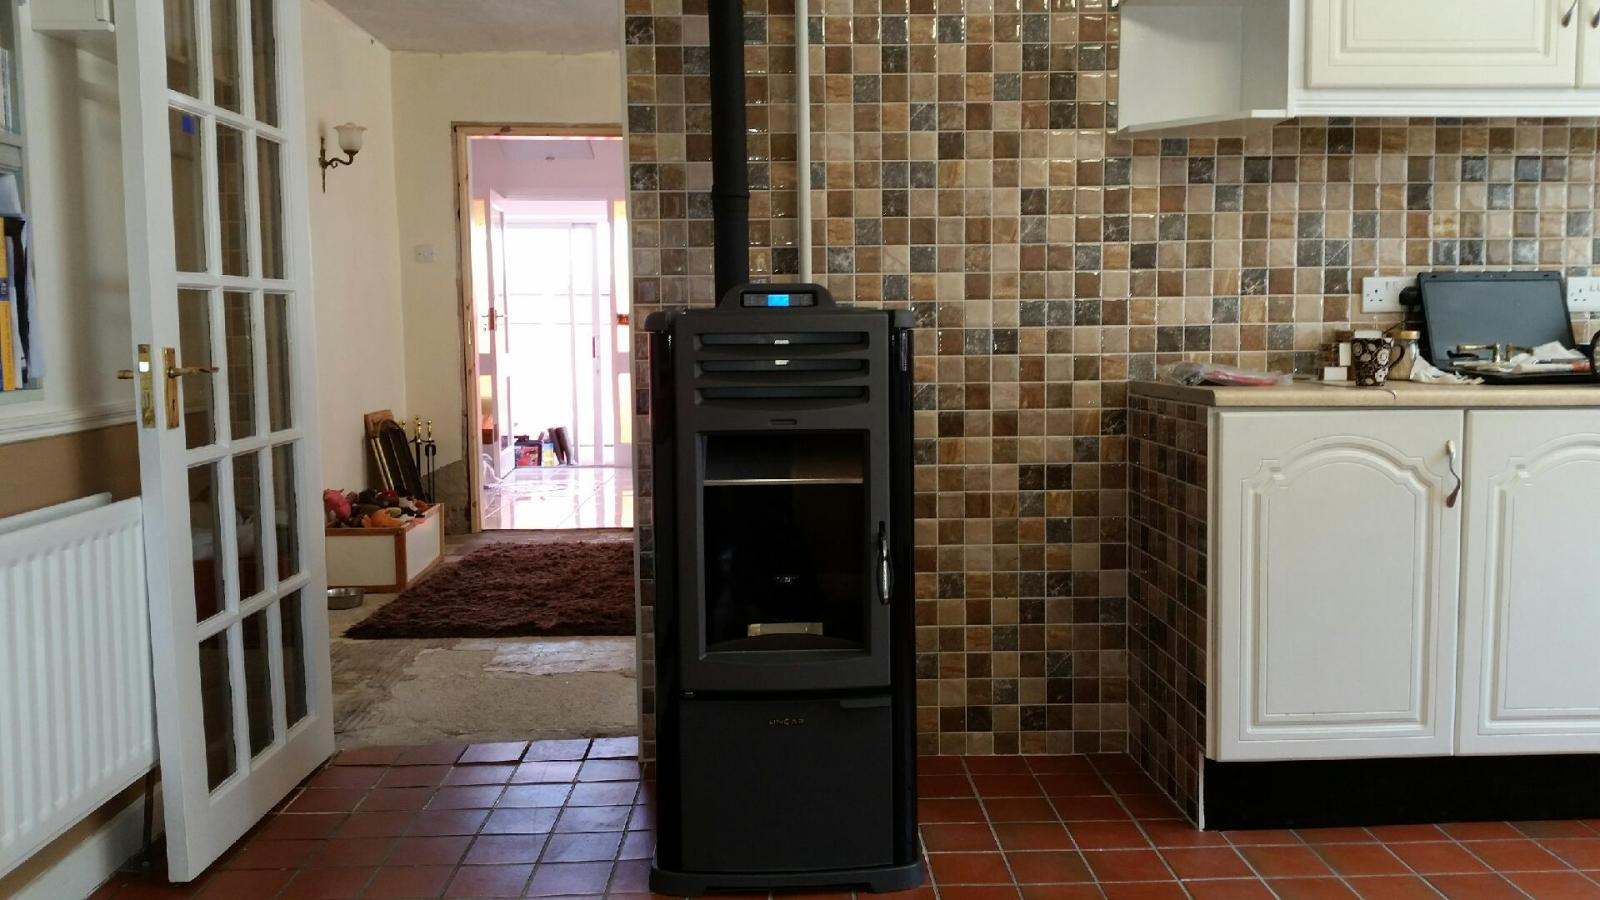 Lincar Stella pellet boiler with metallic and cast iron finish. A modern touch to a classic kitchen.